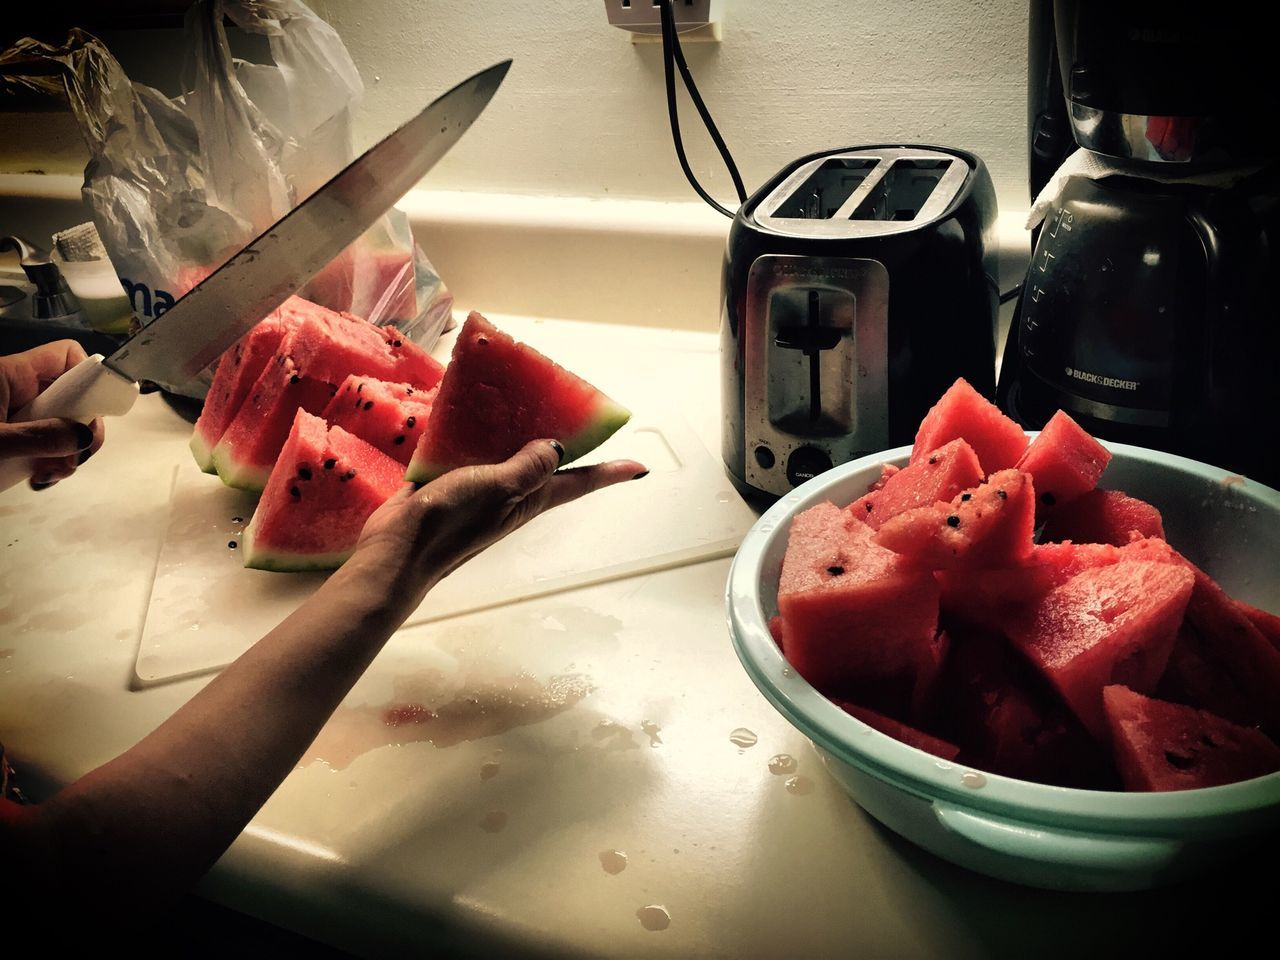 Cropped Hand Cutting Watermelon Slices At Kitchen Platform